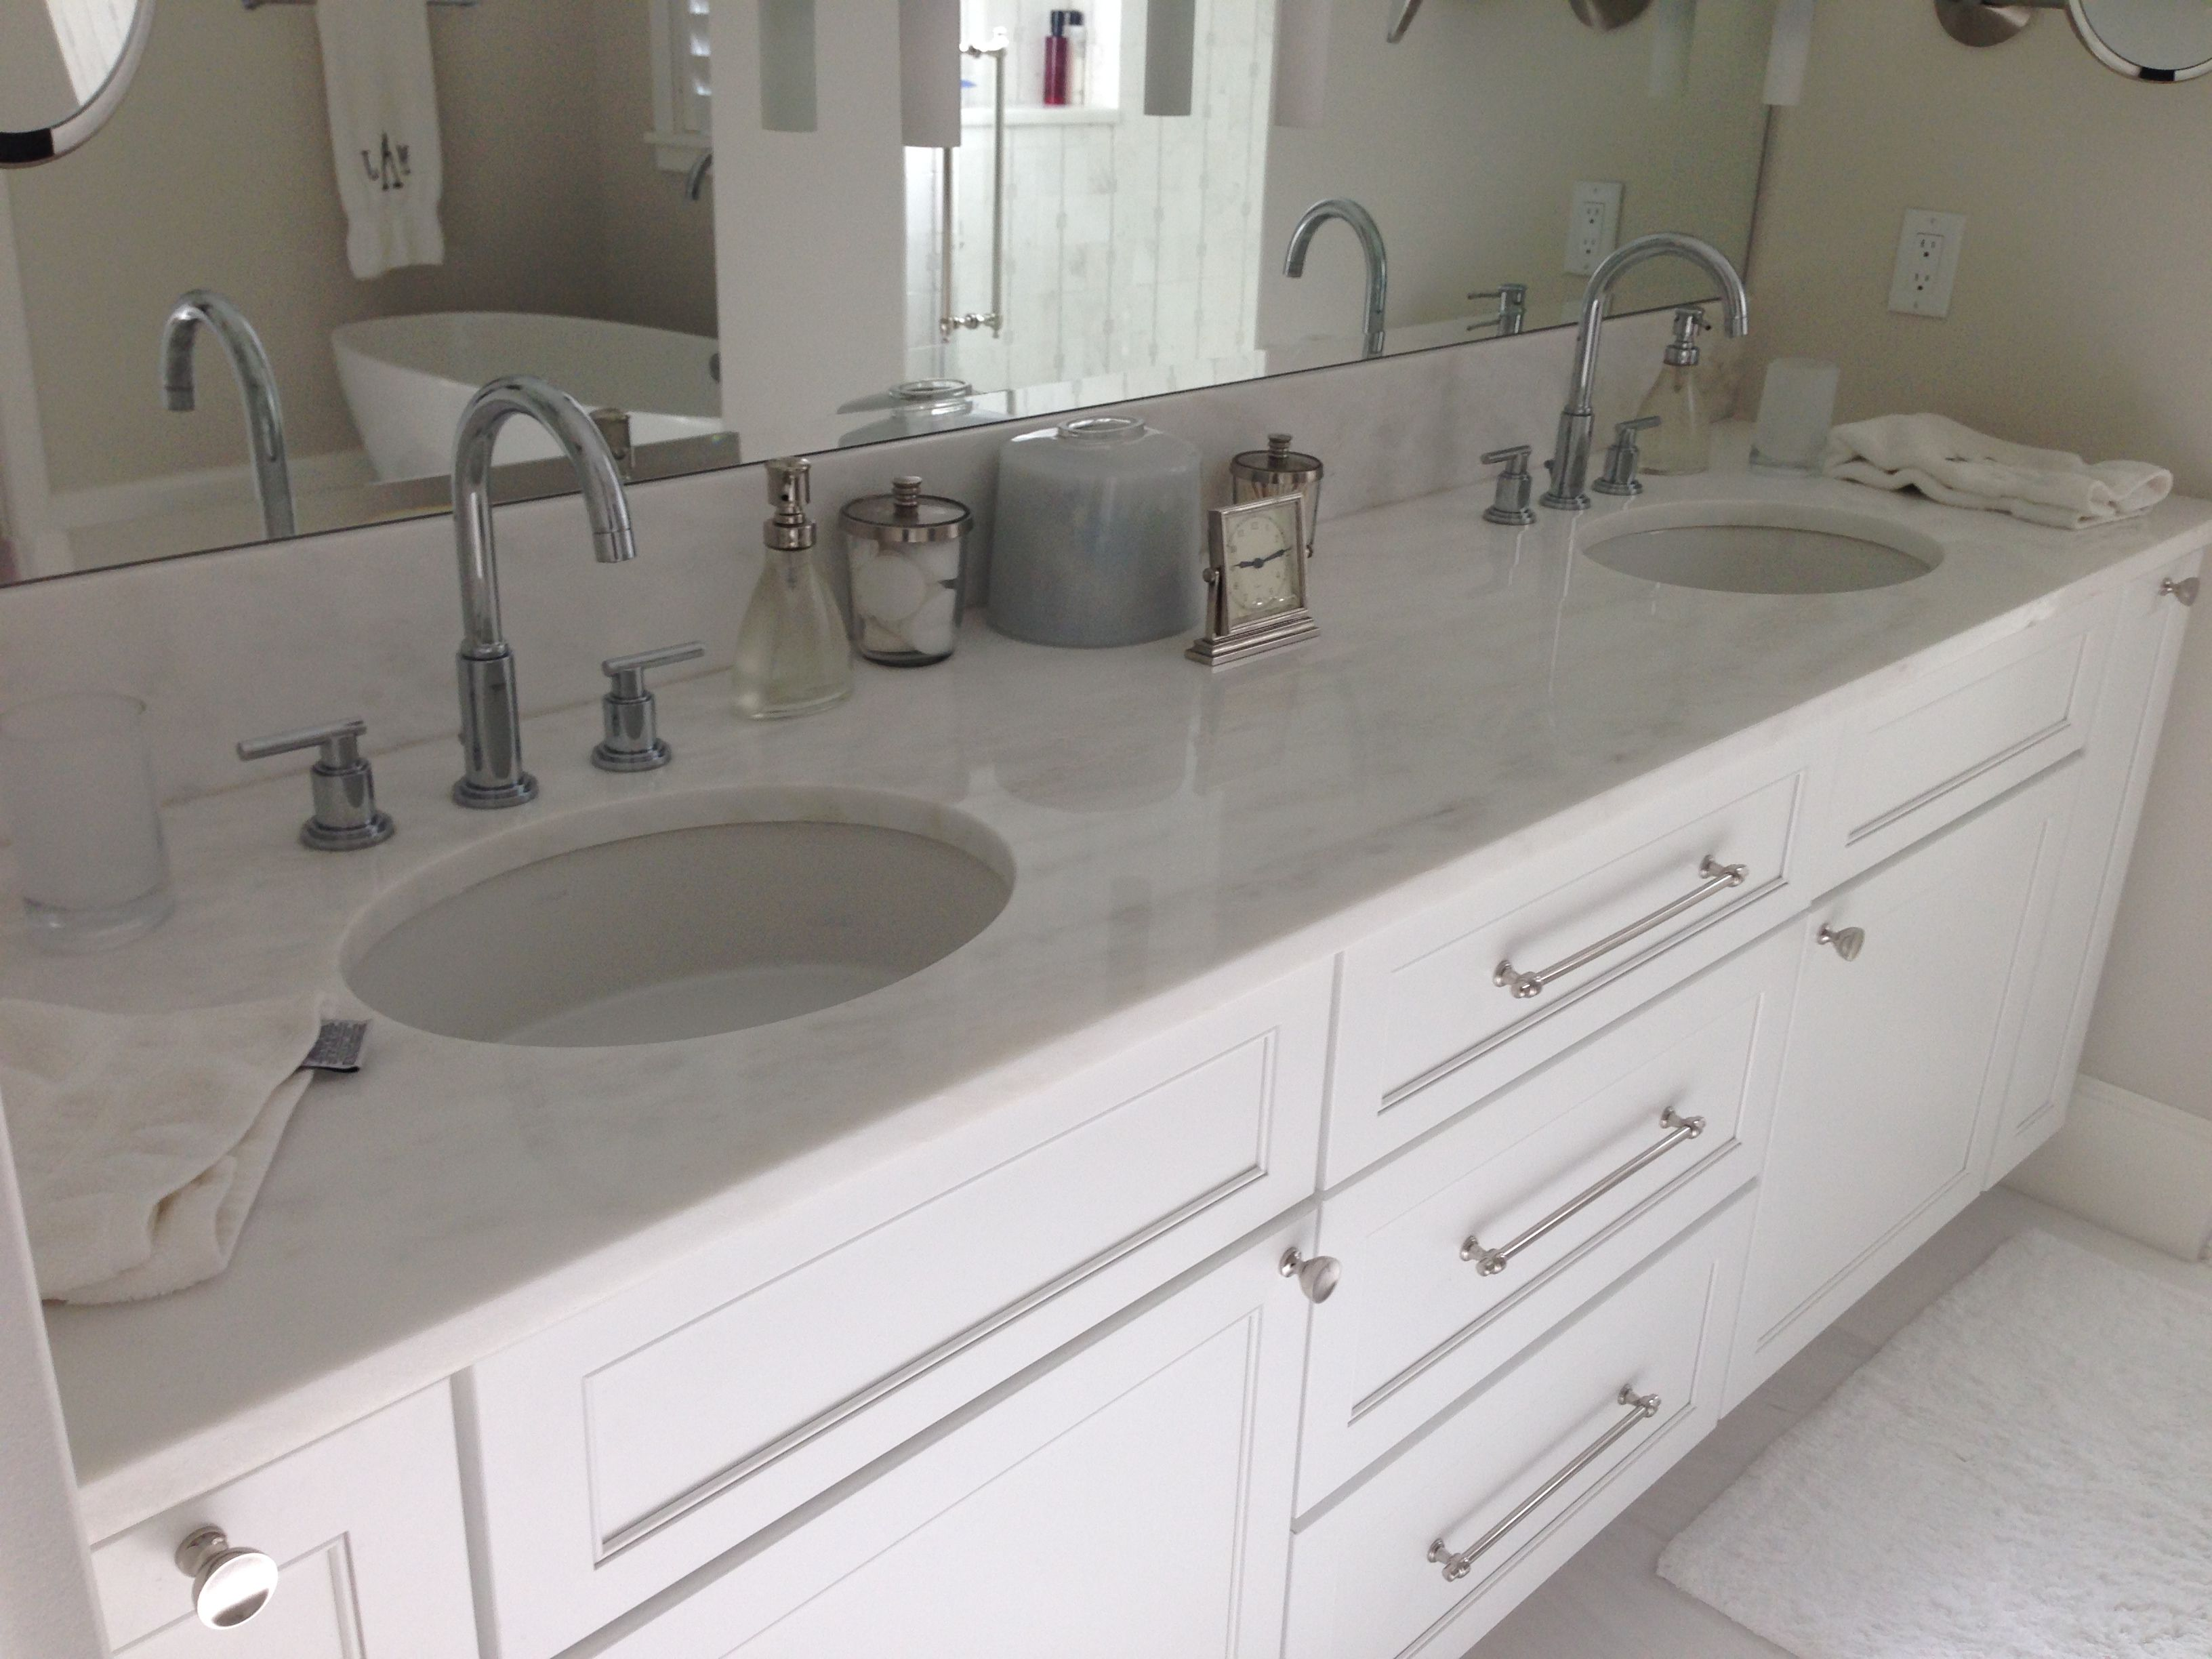 Bianco rhino marble Vanity | ADP Granite Bathroom Countertops and ...